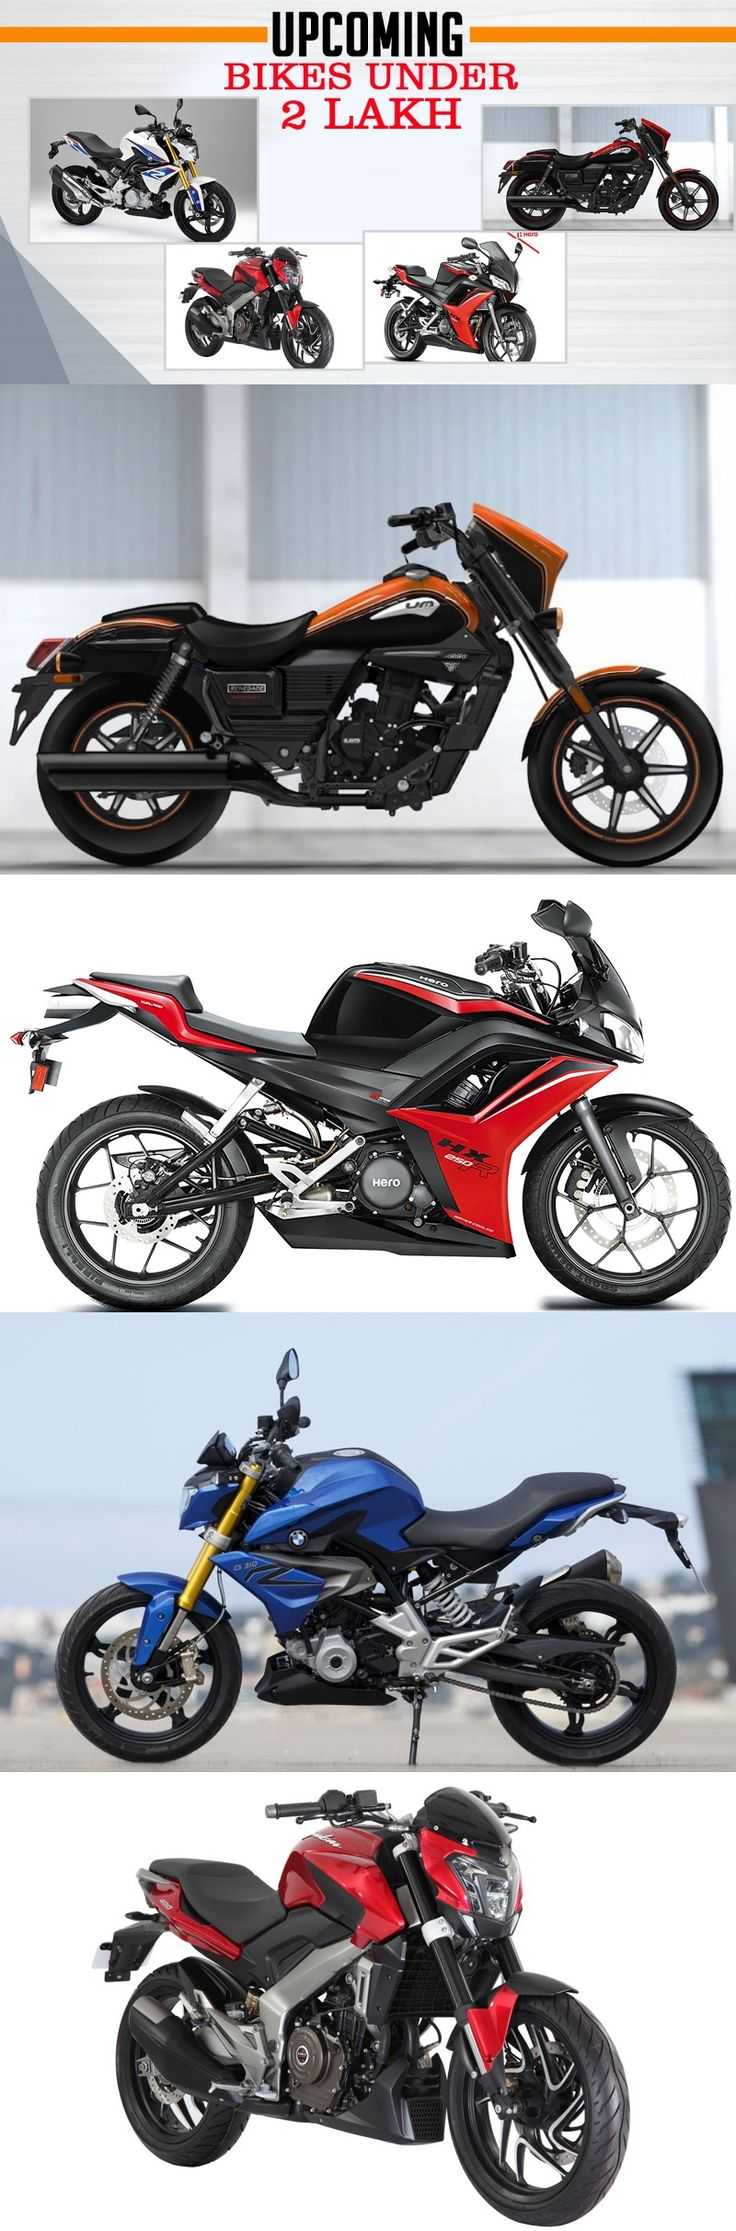 330 Best Bikes Motorcycles Images On Pinterest Motorcycles